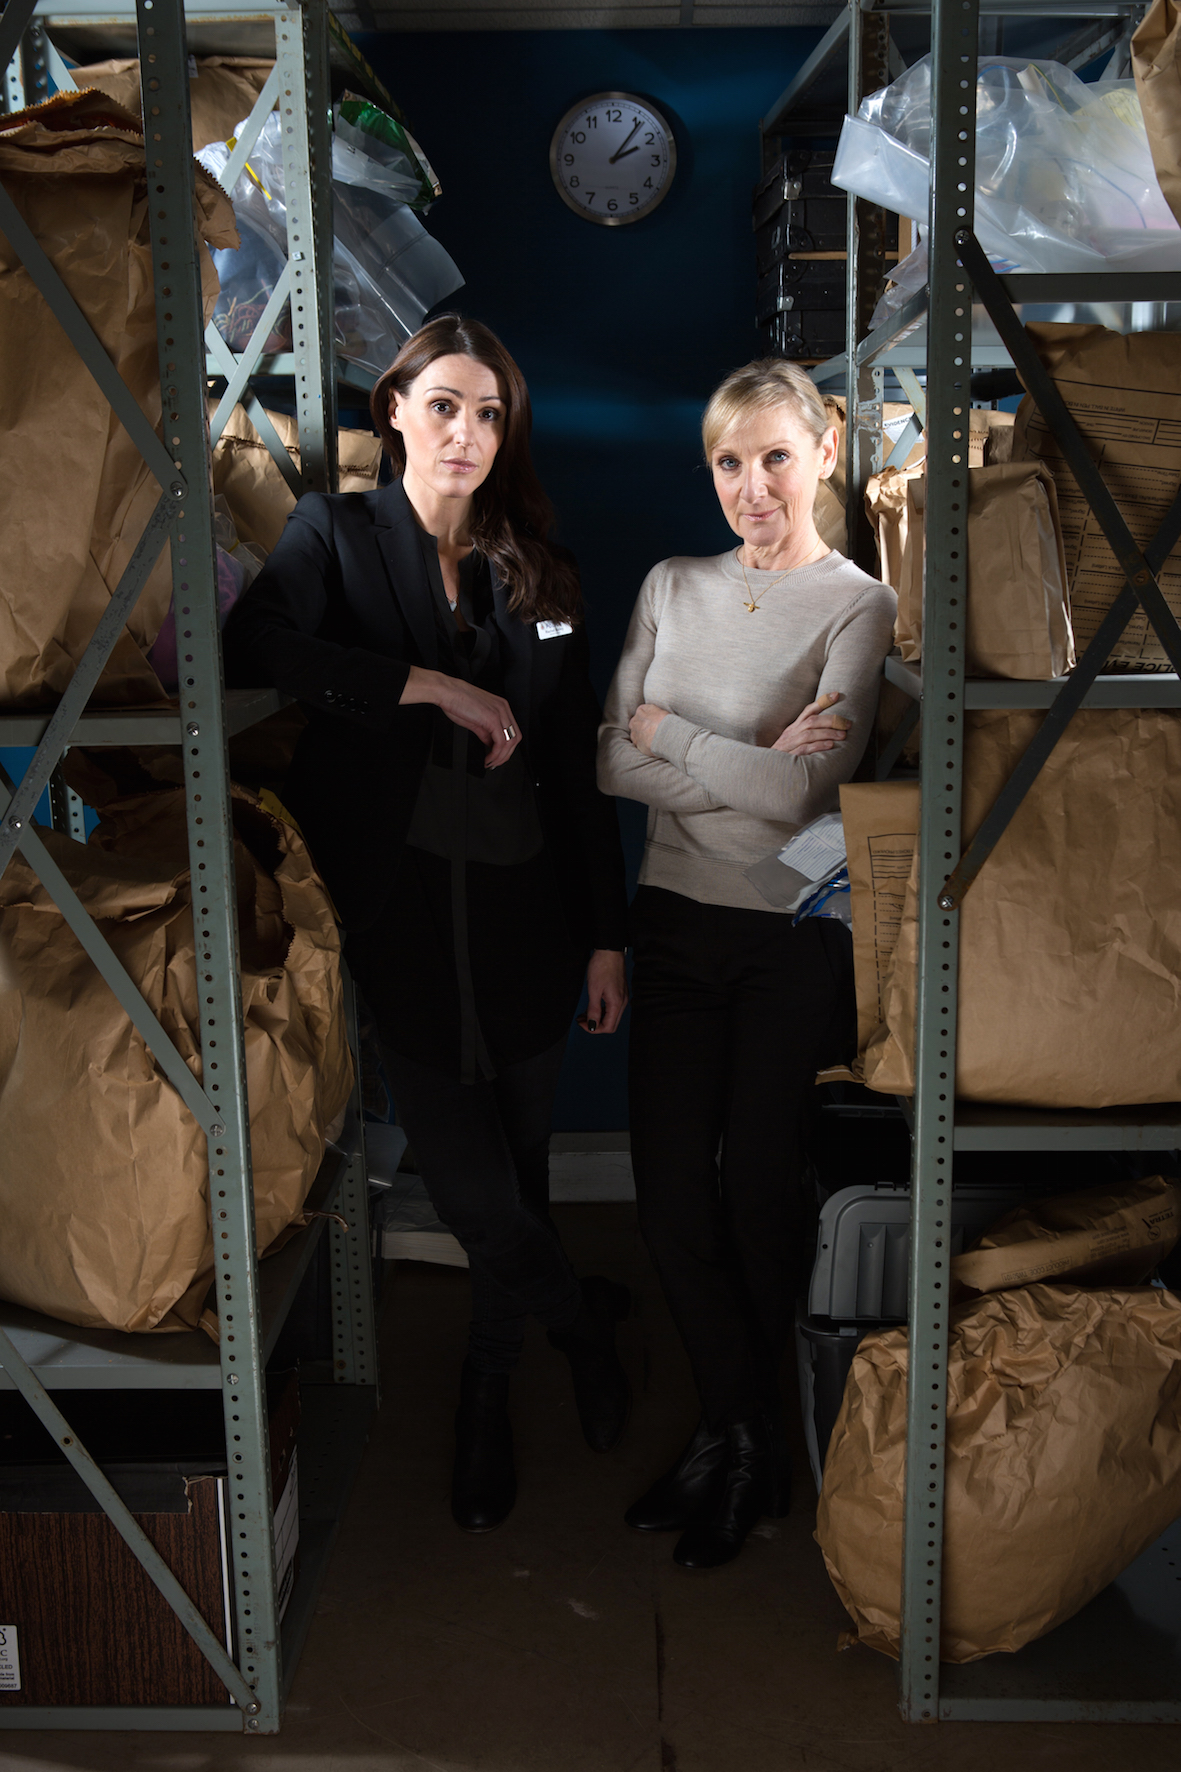 RACHEL BAILEY (Suranne Jones) and JANET SCOTT (Lesley Sharp) in the evidence room